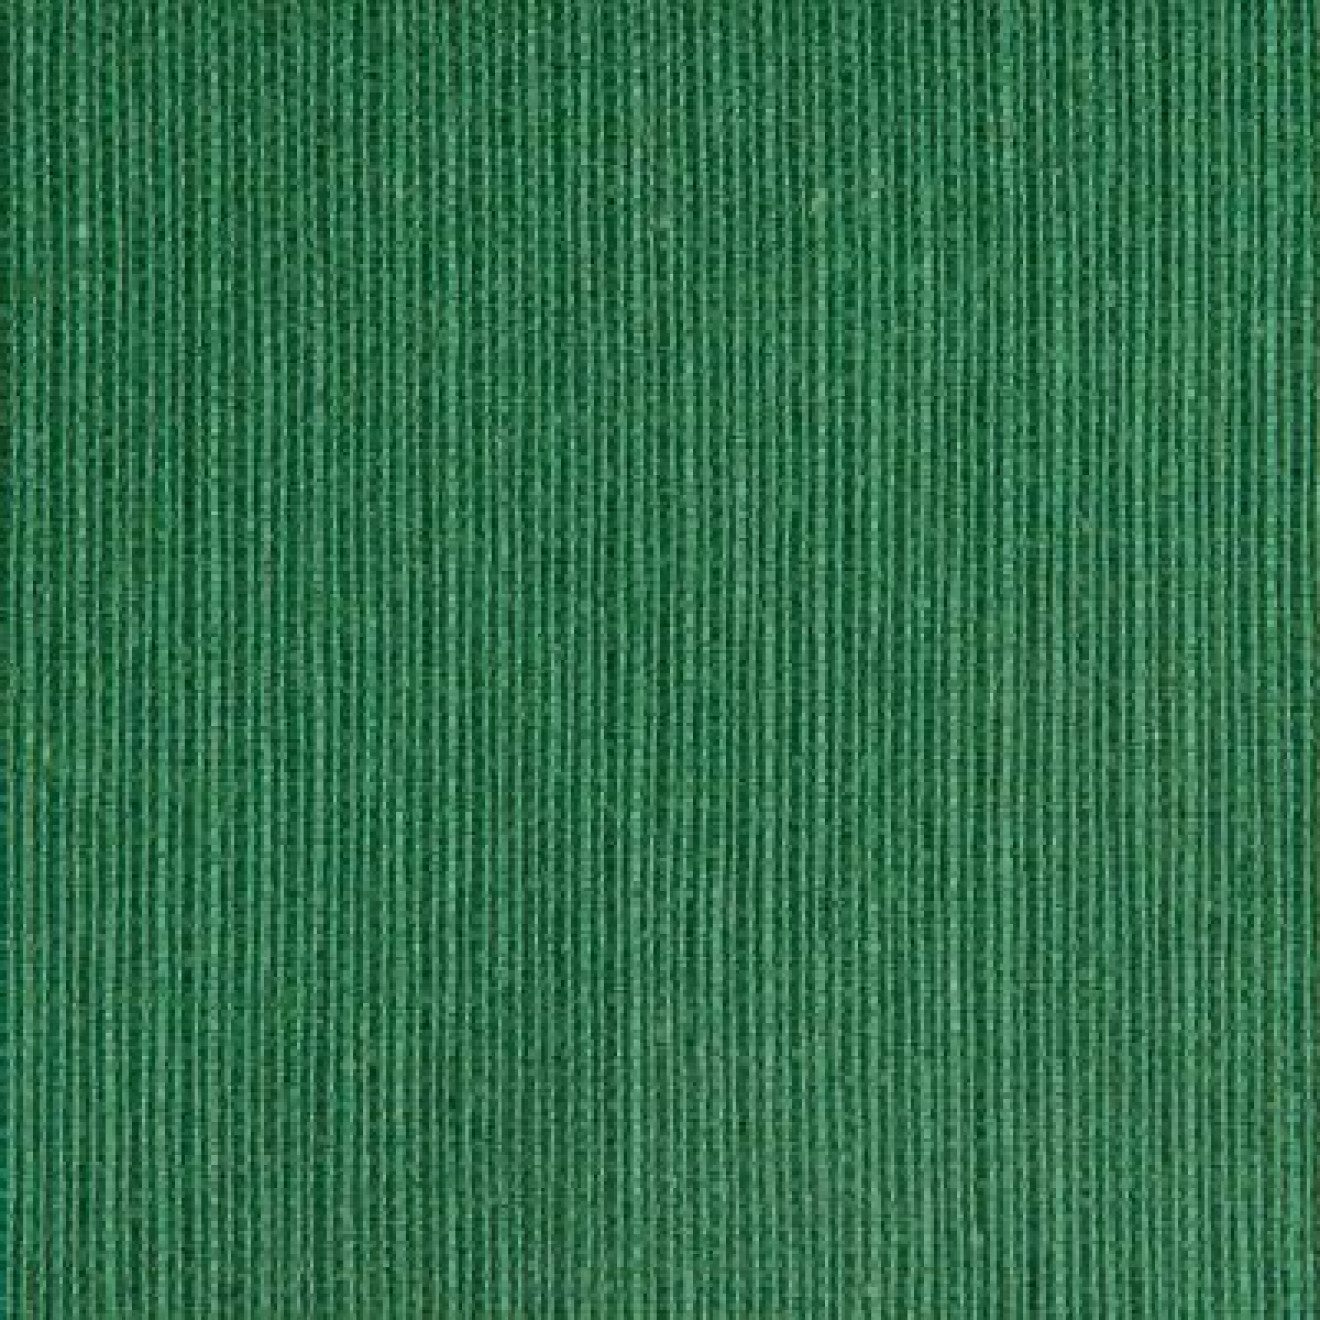 Dreieck - Acrylstoff Loneta Color 119